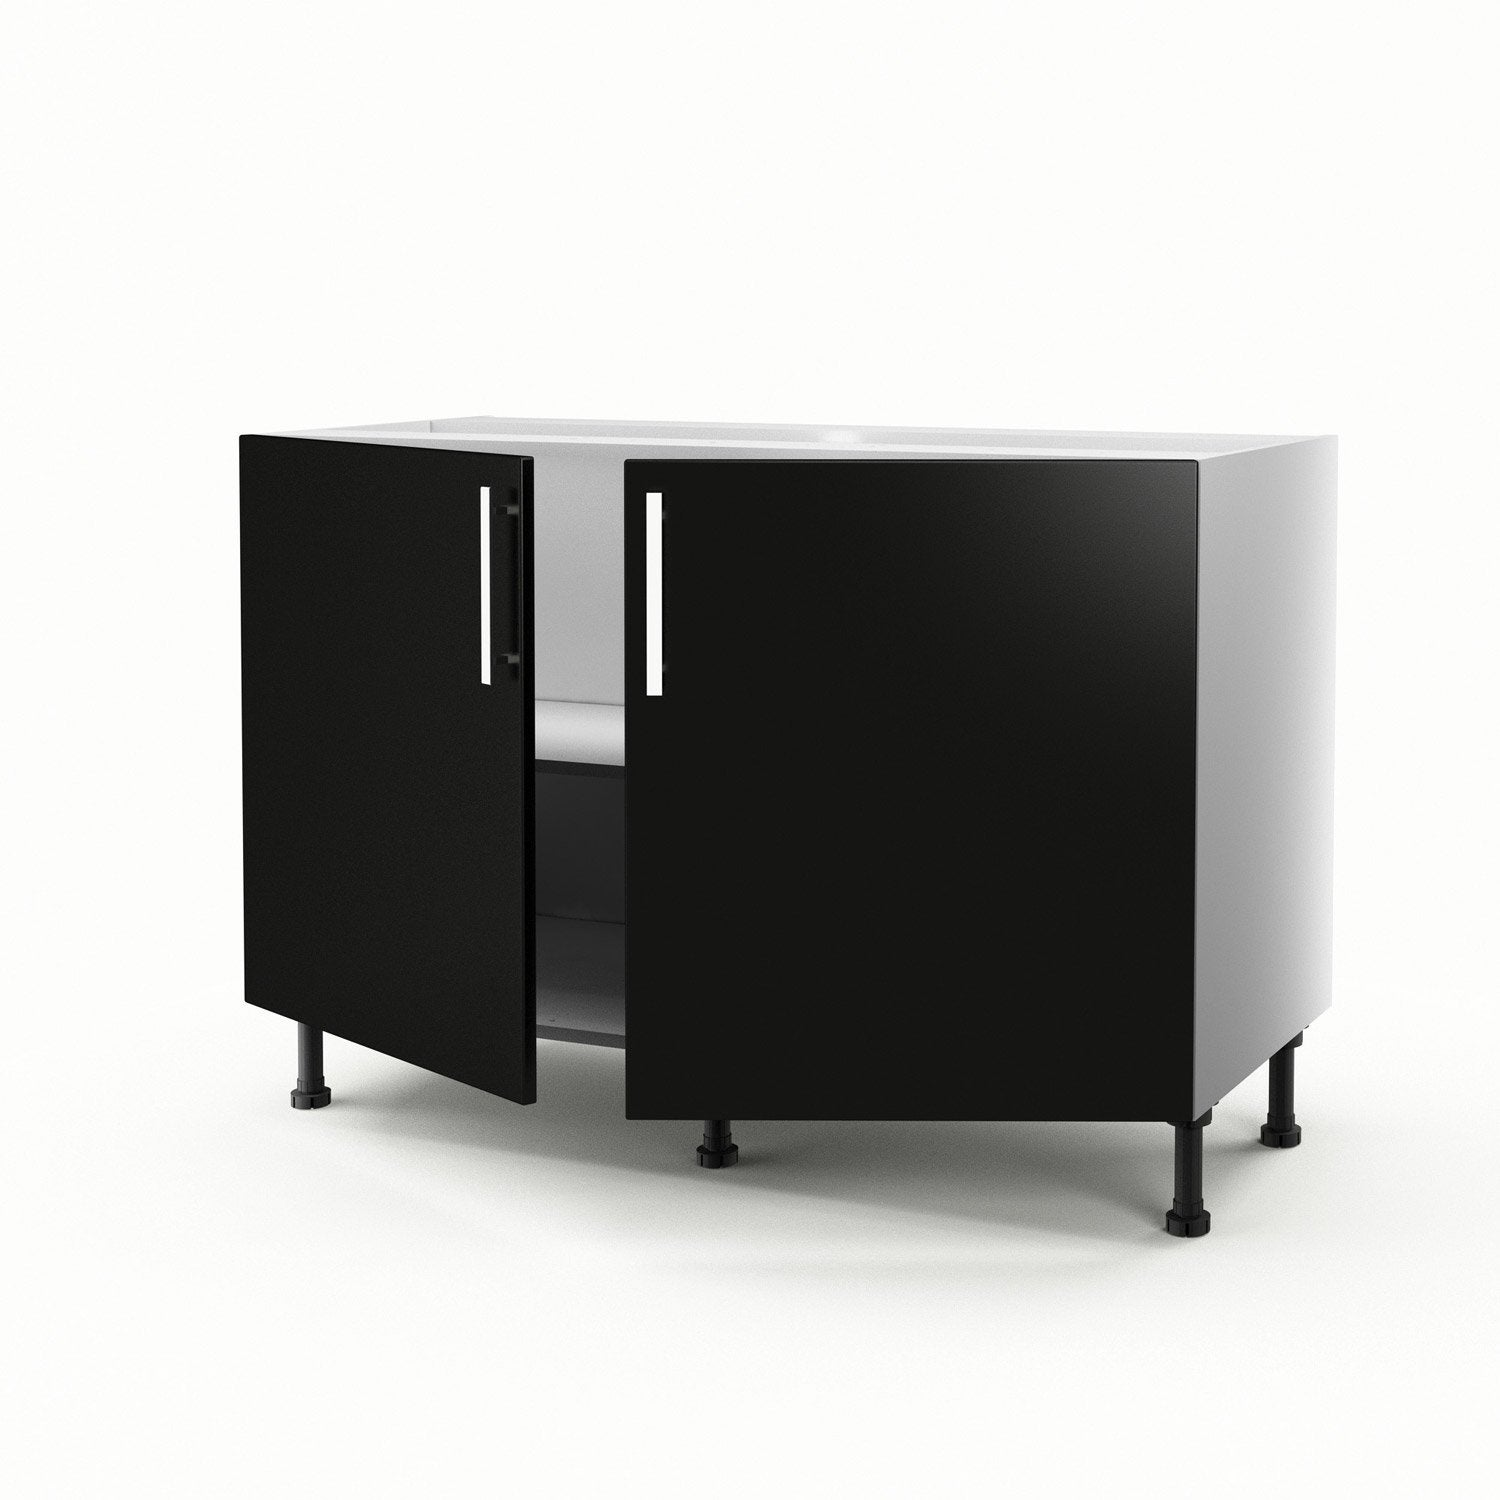 meuble de cuisine sous vier noir 2 portes d lice x x cm leroy merlin. Black Bedroom Furniture Sets. Home Design Ideas